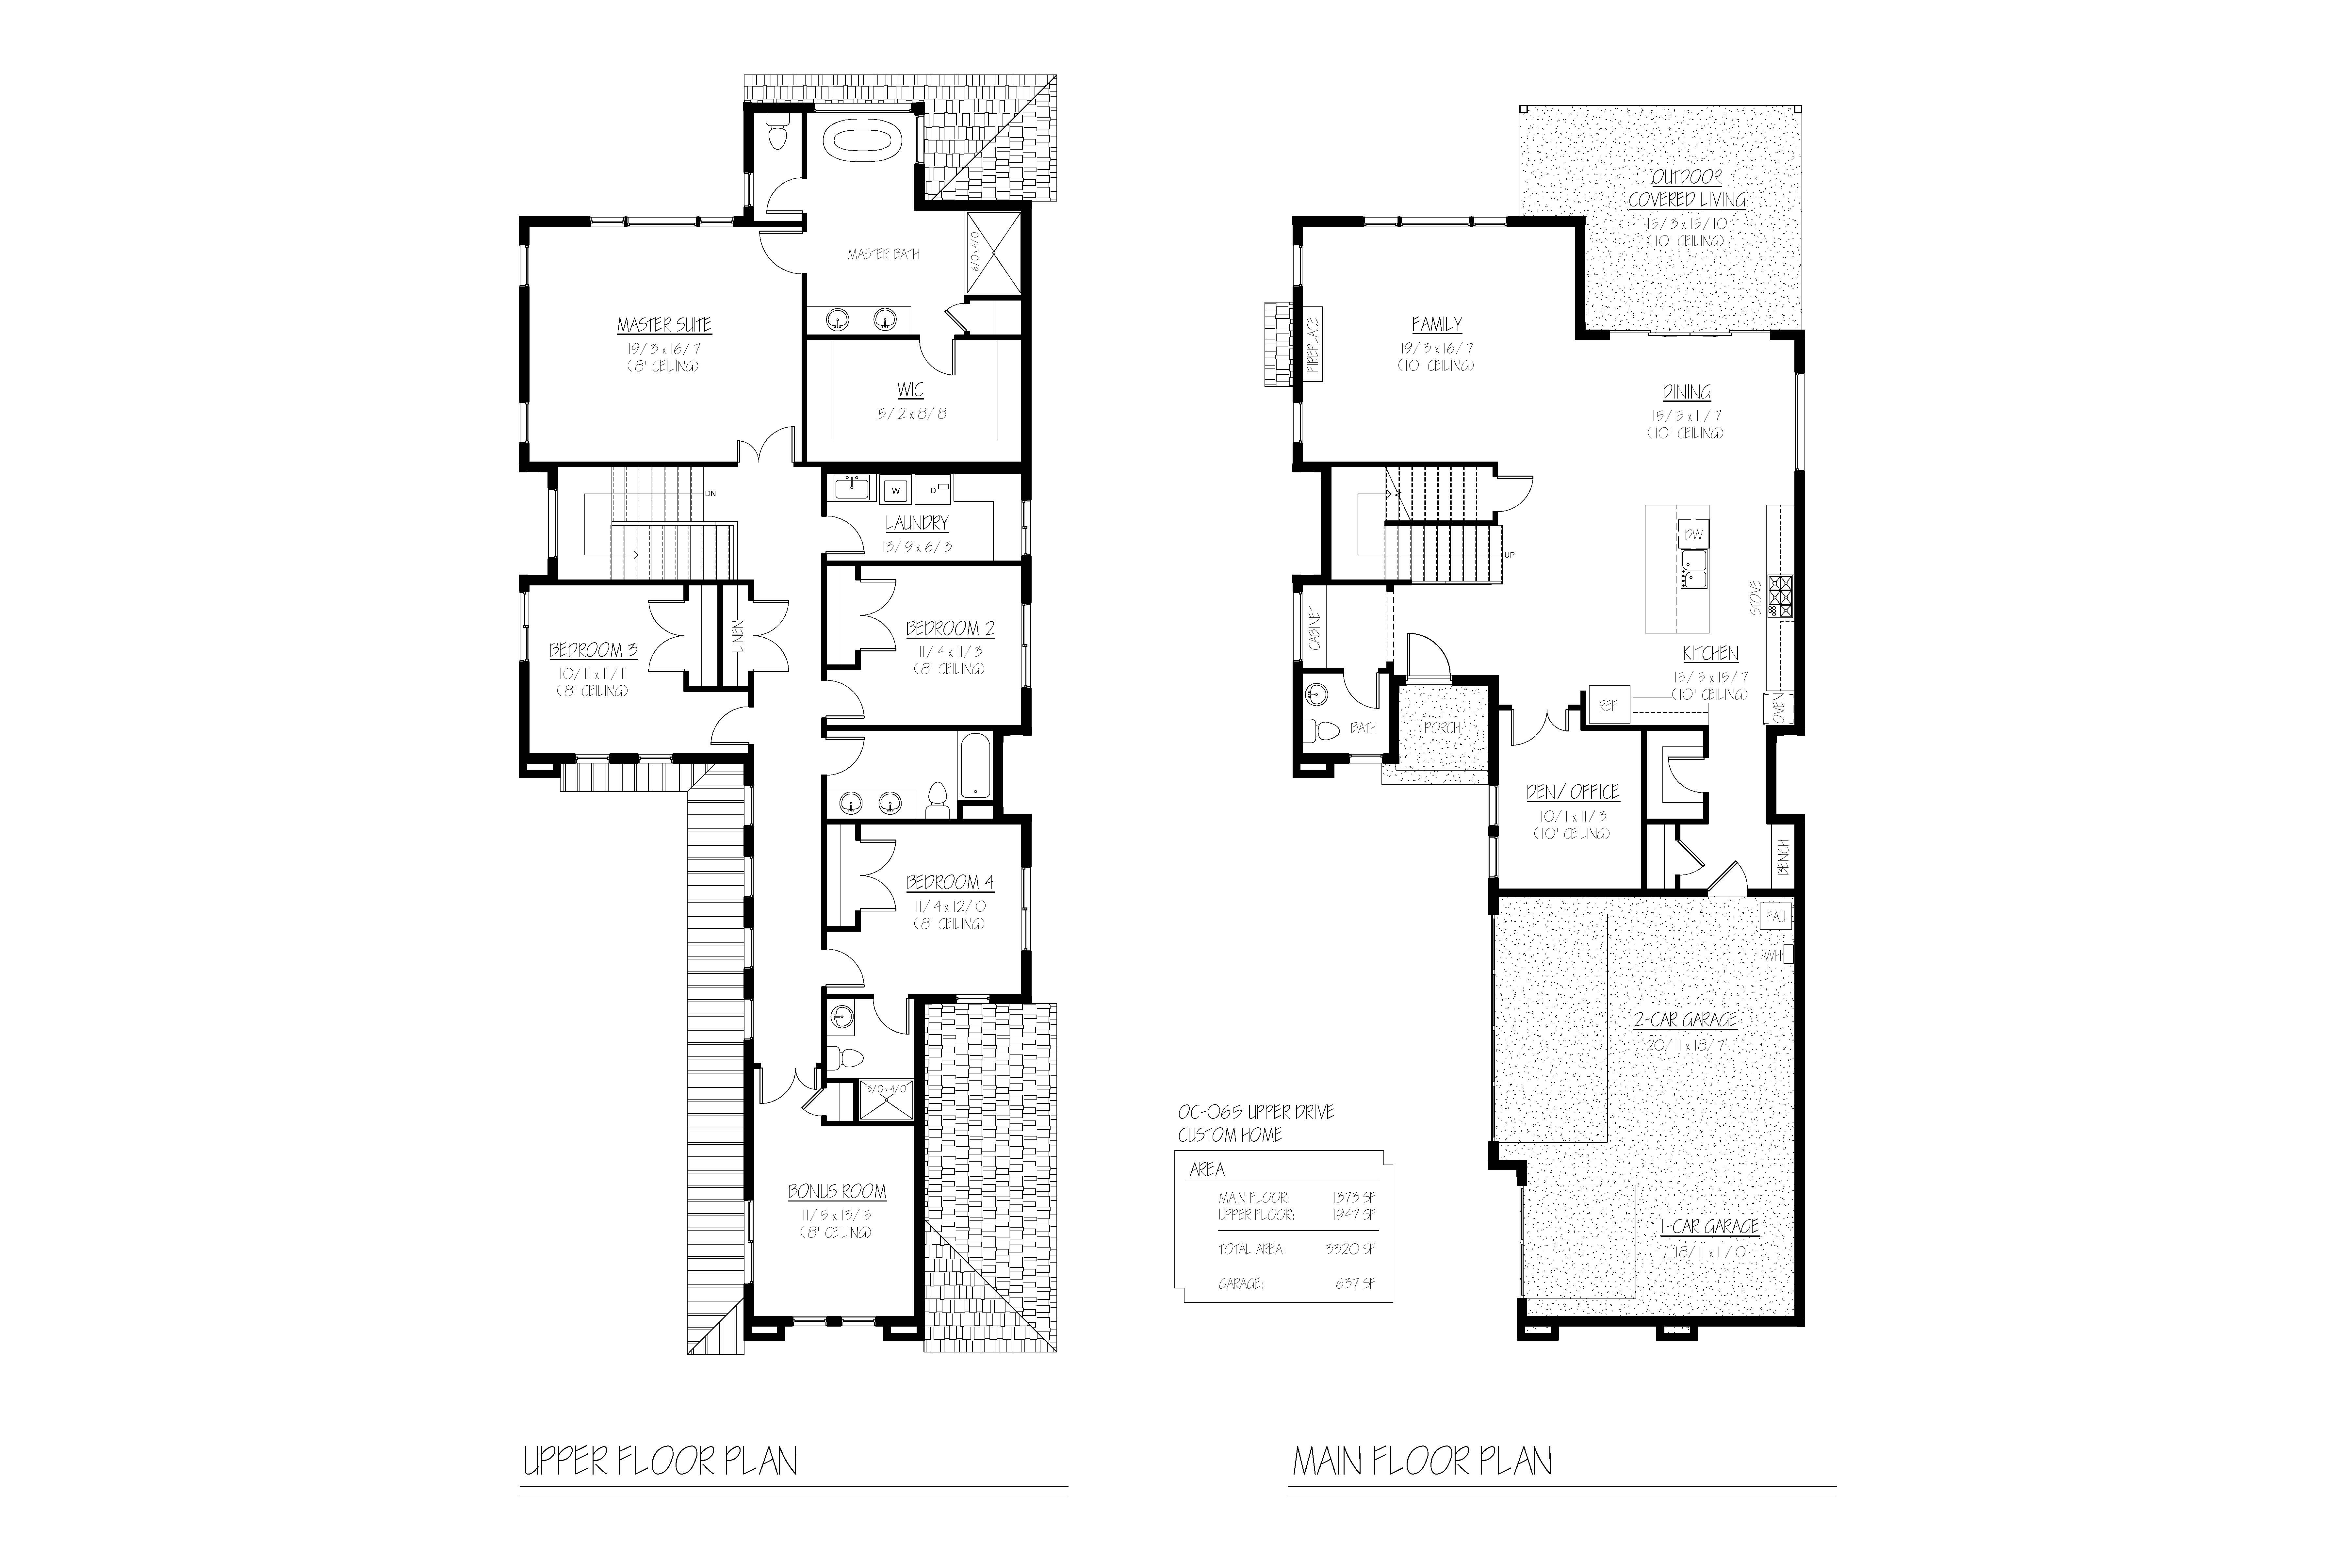 Renaissance homes floor plans renaissance 4121 4 for Renaissance homes floor plans